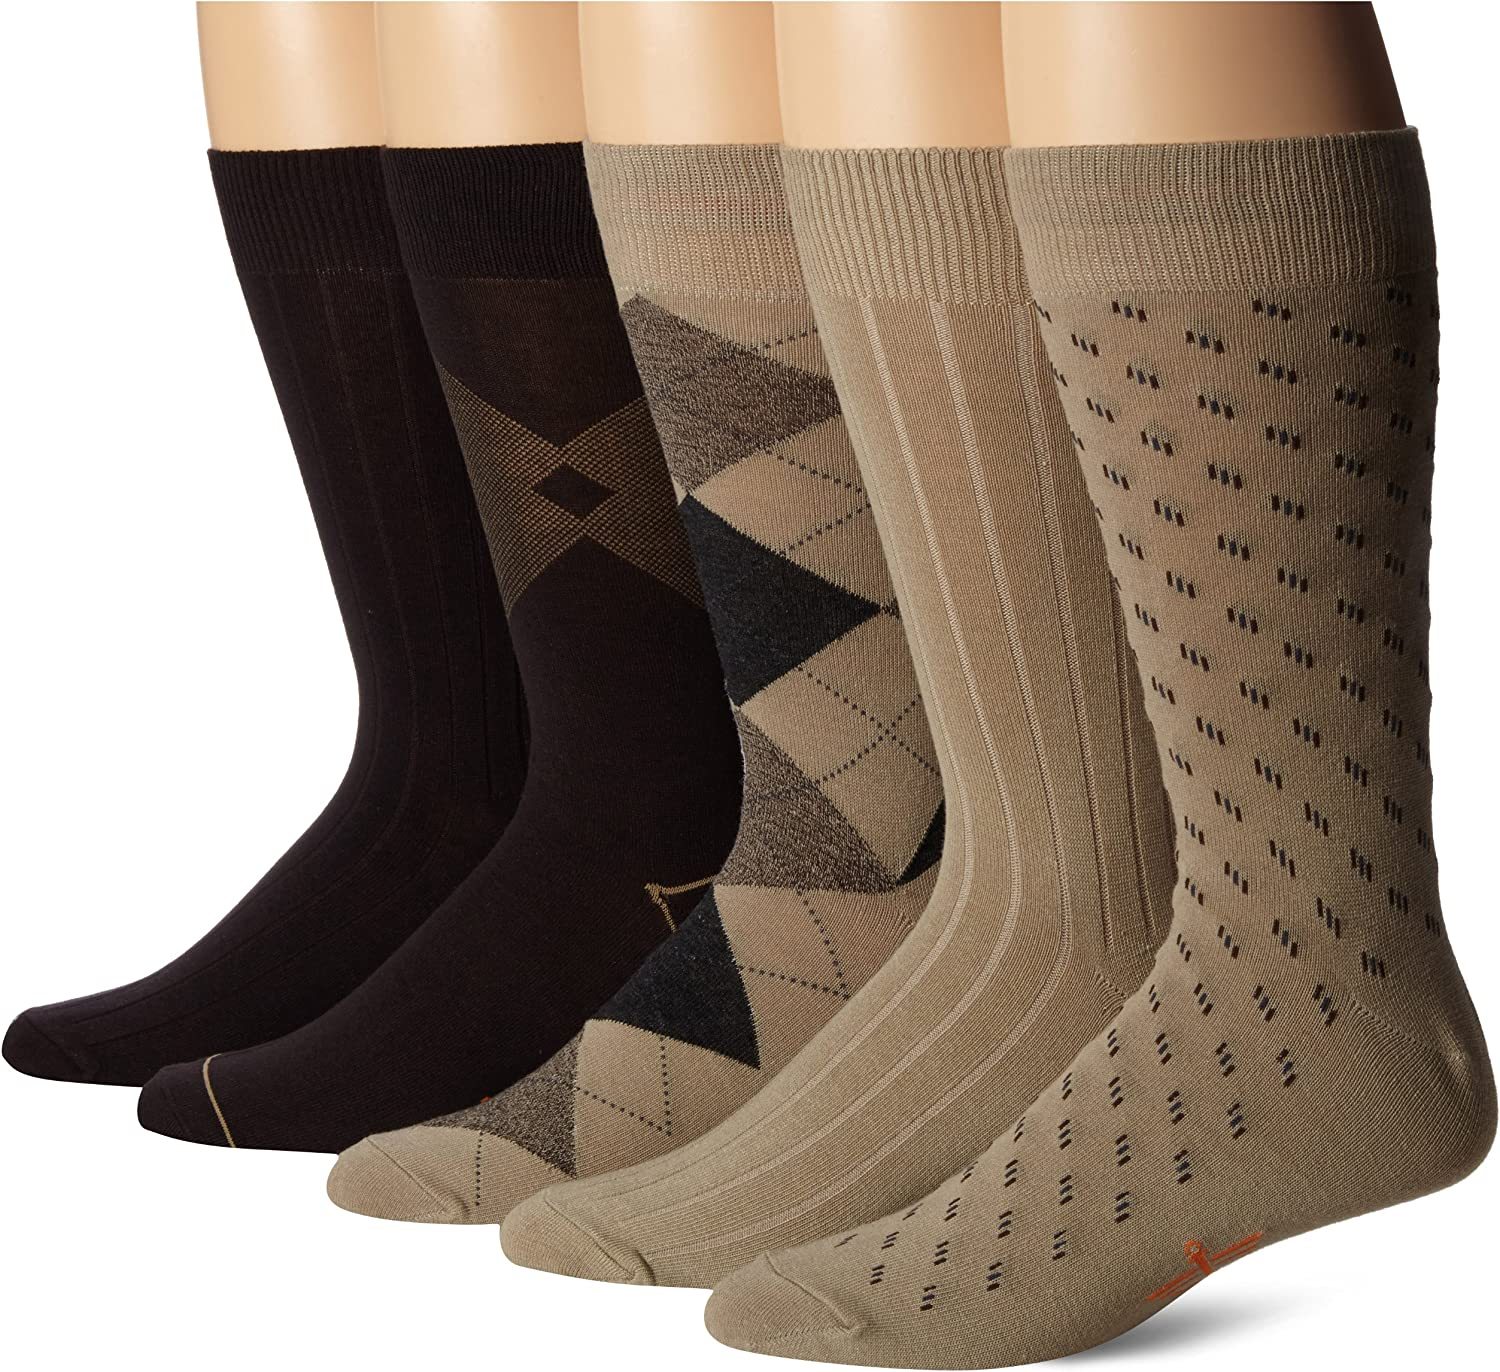 Dockers Men's Classics Dress Argyle Crew Socks, (Pack of 5)